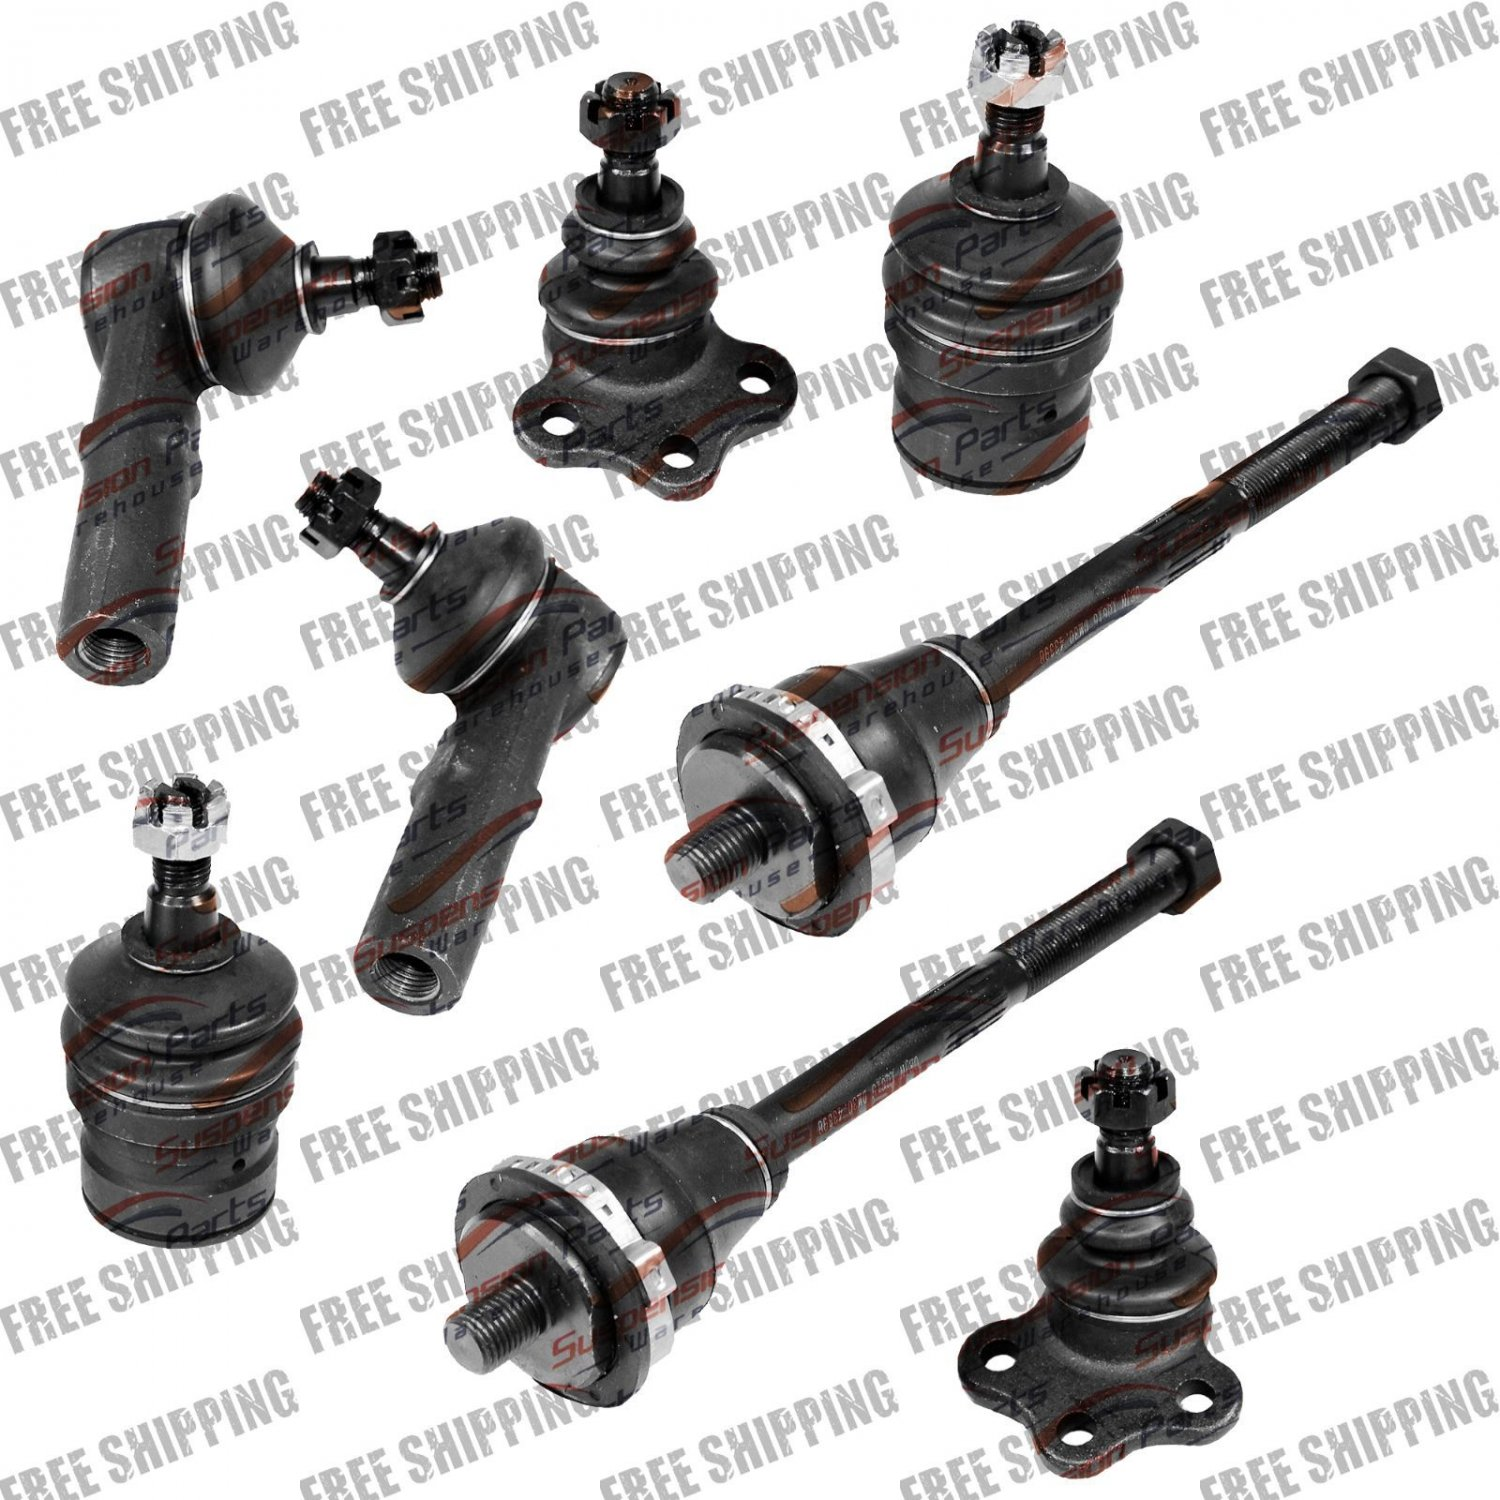 4WD Dodge Dakota/Durango Front Kit Suspension Ball Joint /Tie Rod Linkages